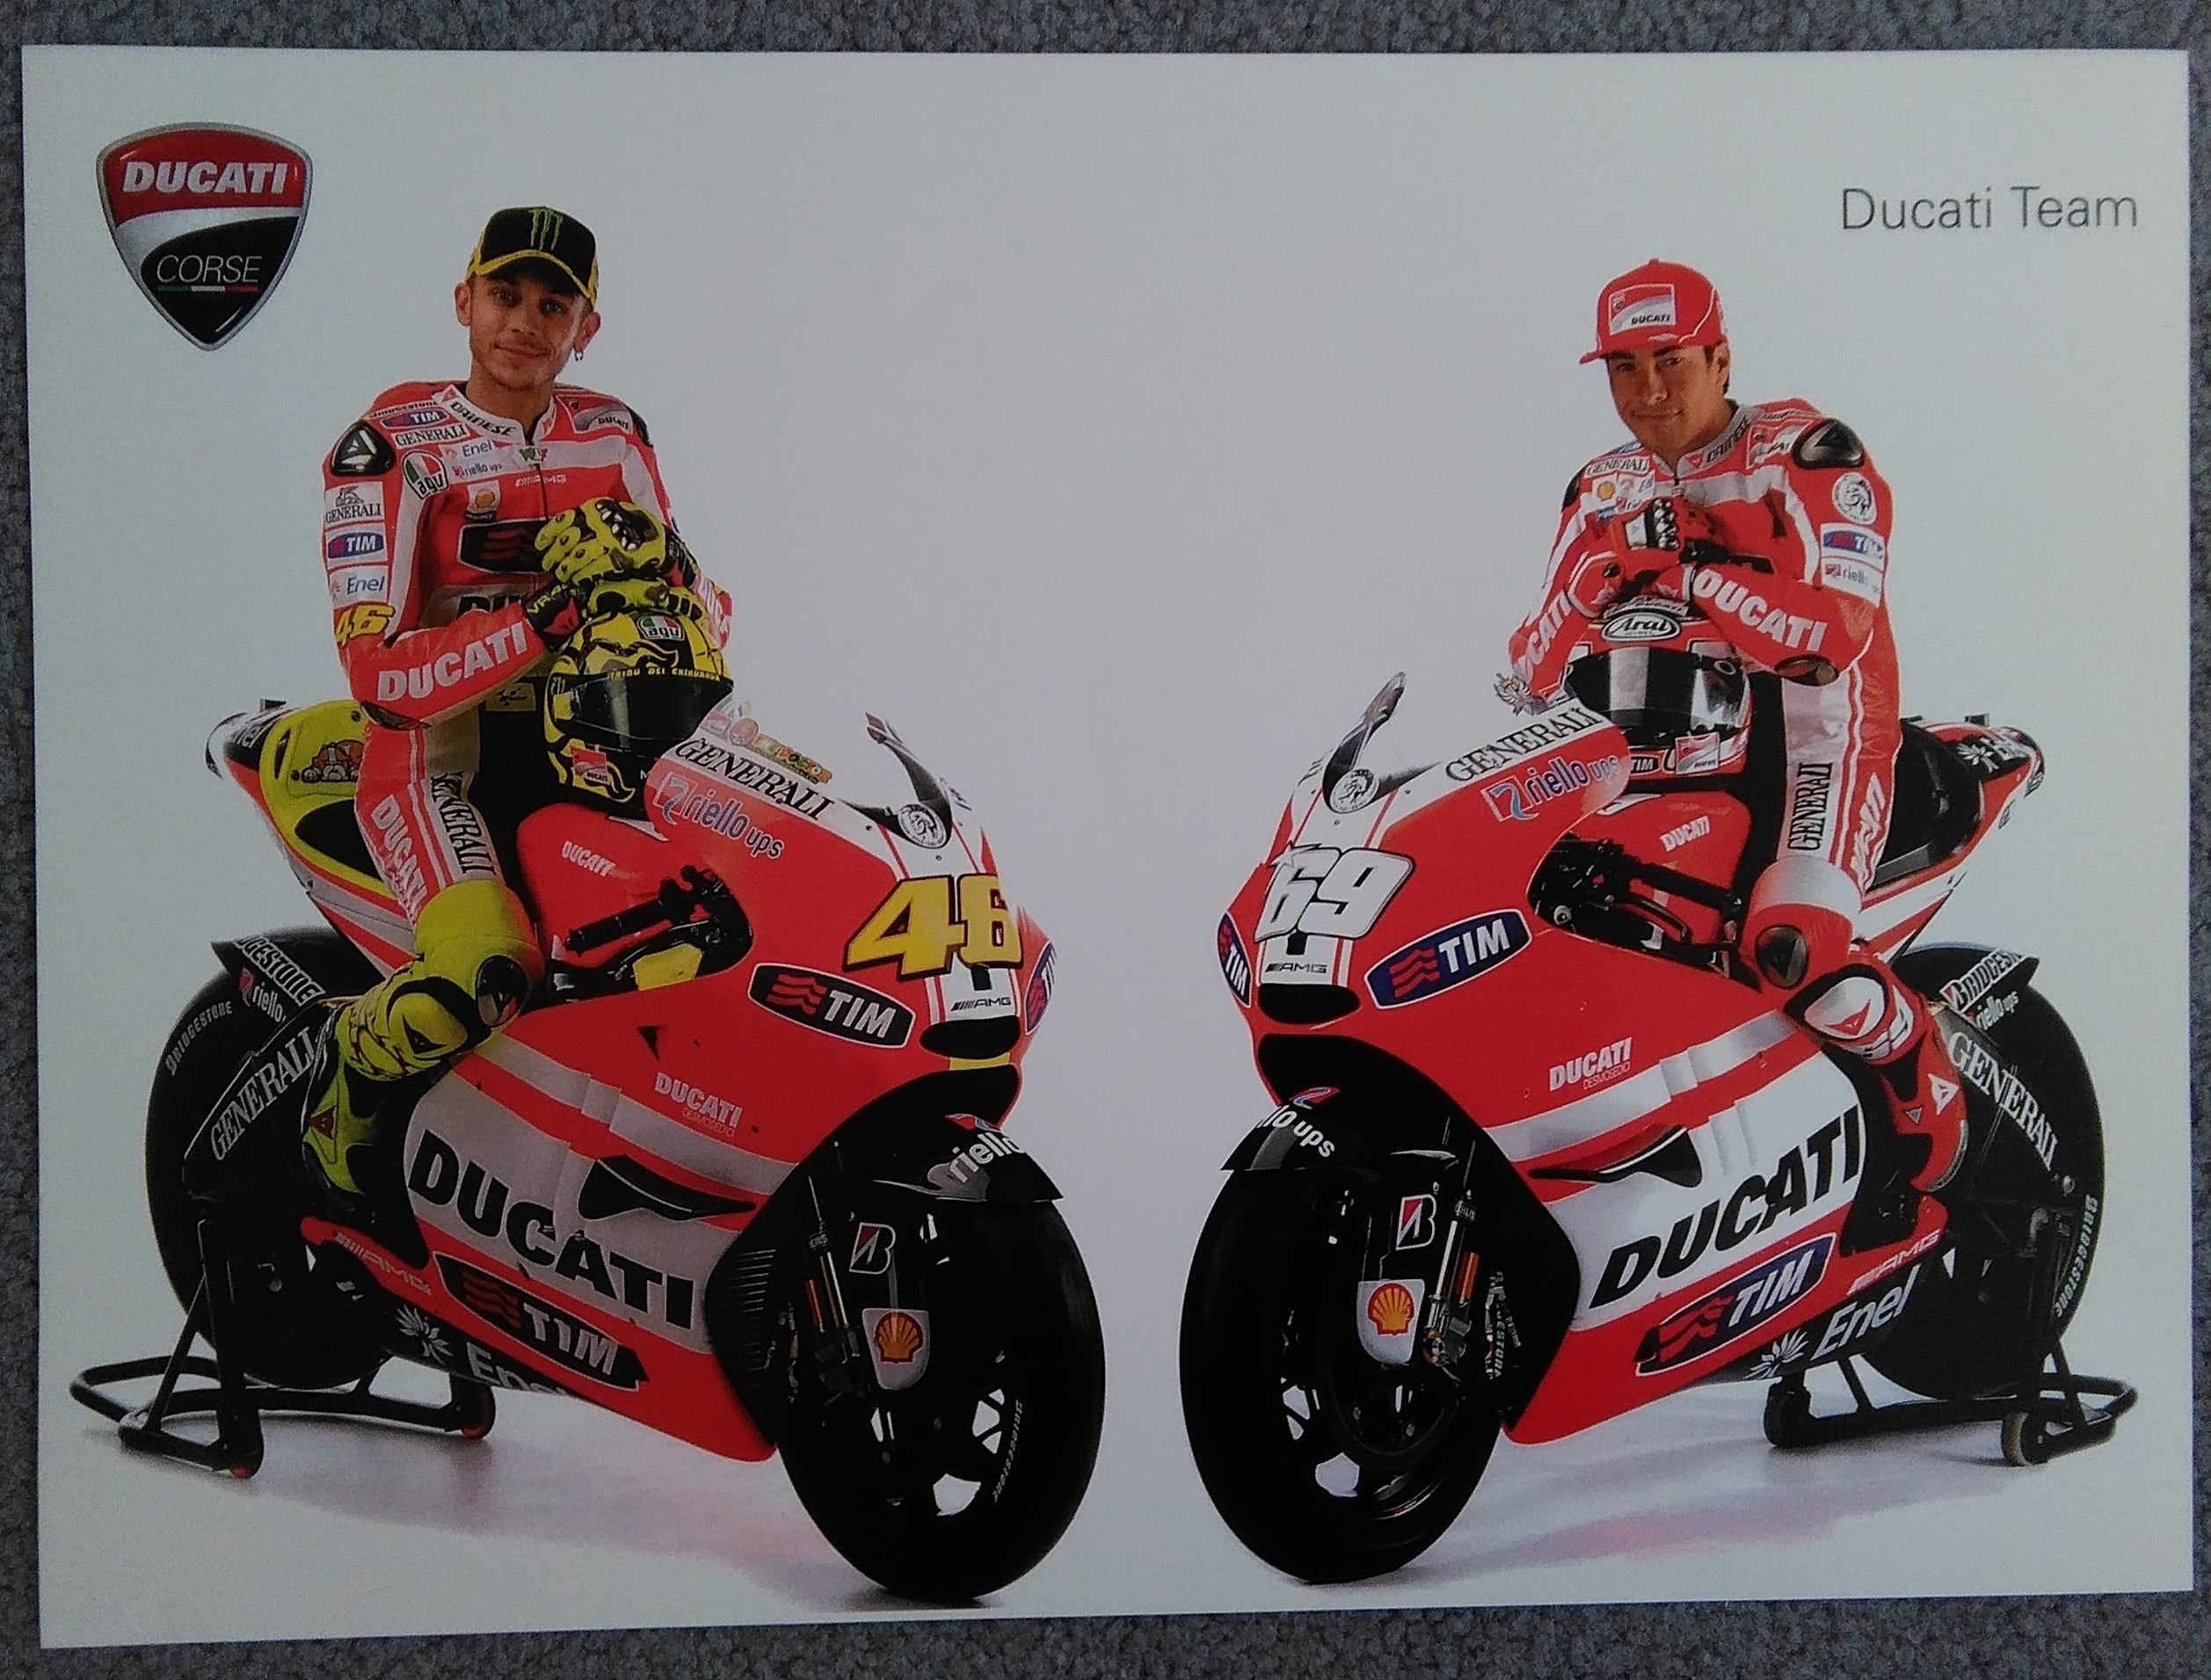 Rossi and Hayden-Ducati Team